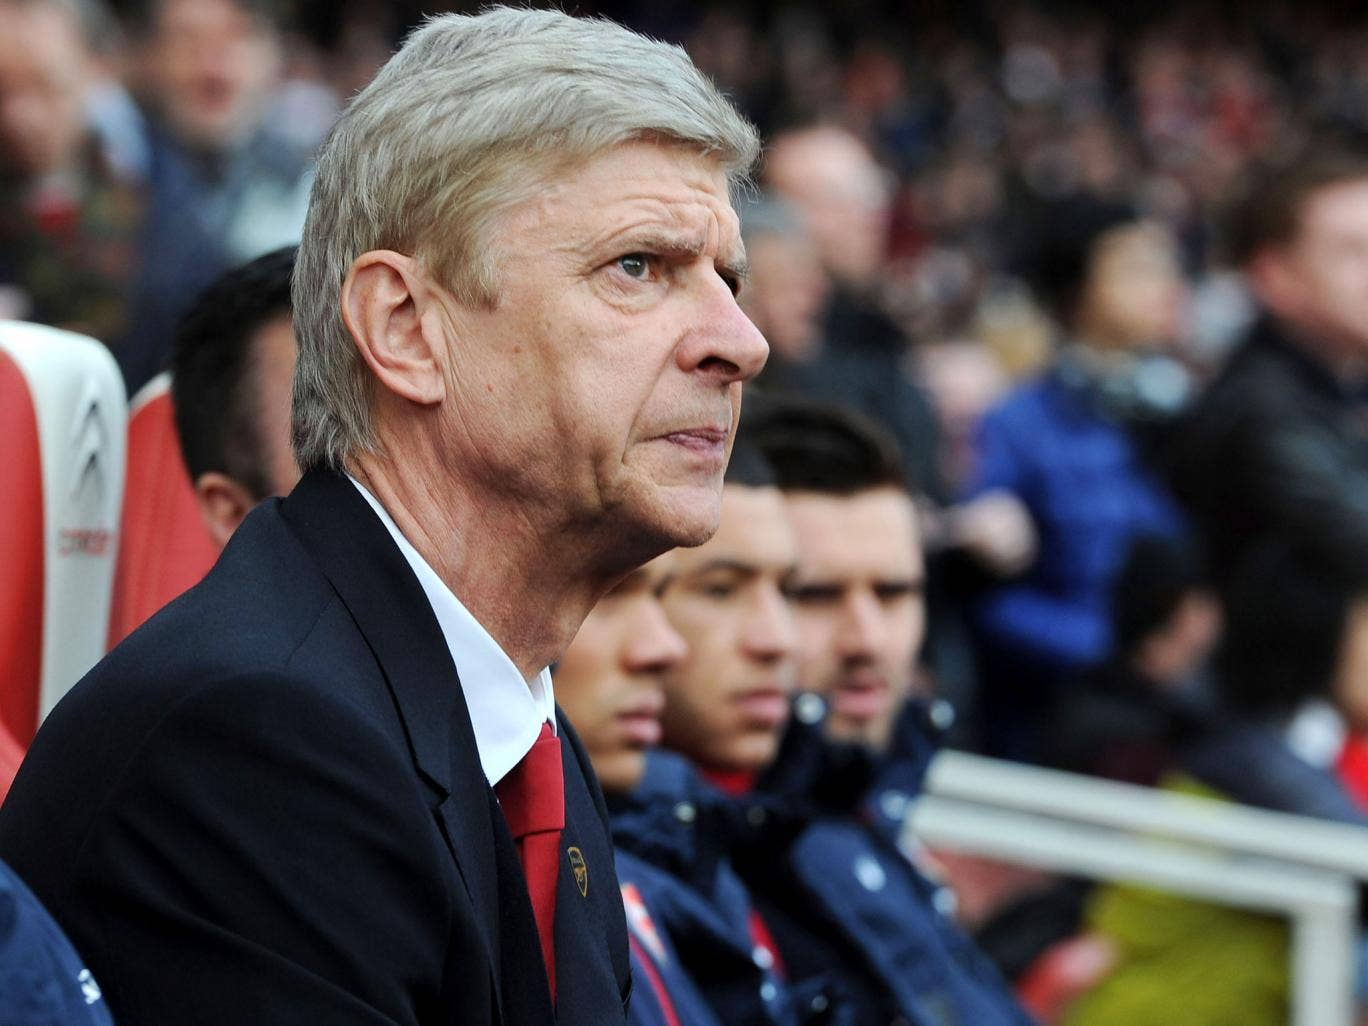 Arsene Wenger could agree a new three-year contract as early as this week after Arsenal's majority shareholder Stan Kroenke flew in to London